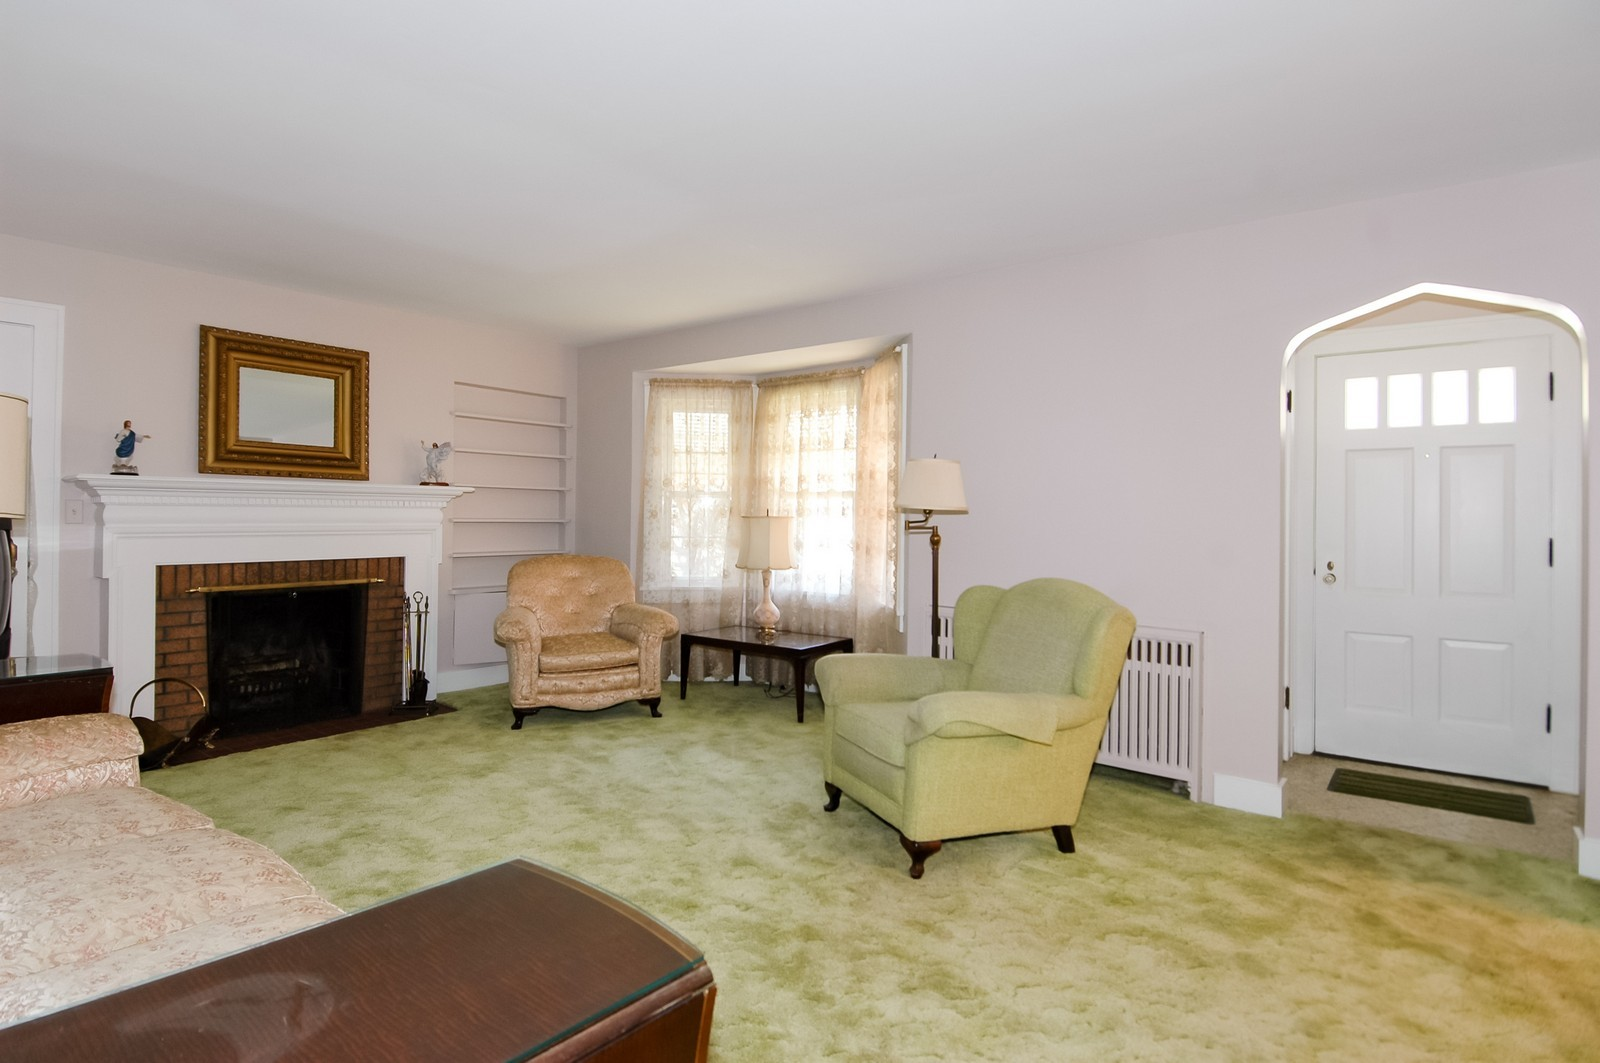 Real Estate Photography - 302 Washington, Algonquin, IL, 60102 - Living Room